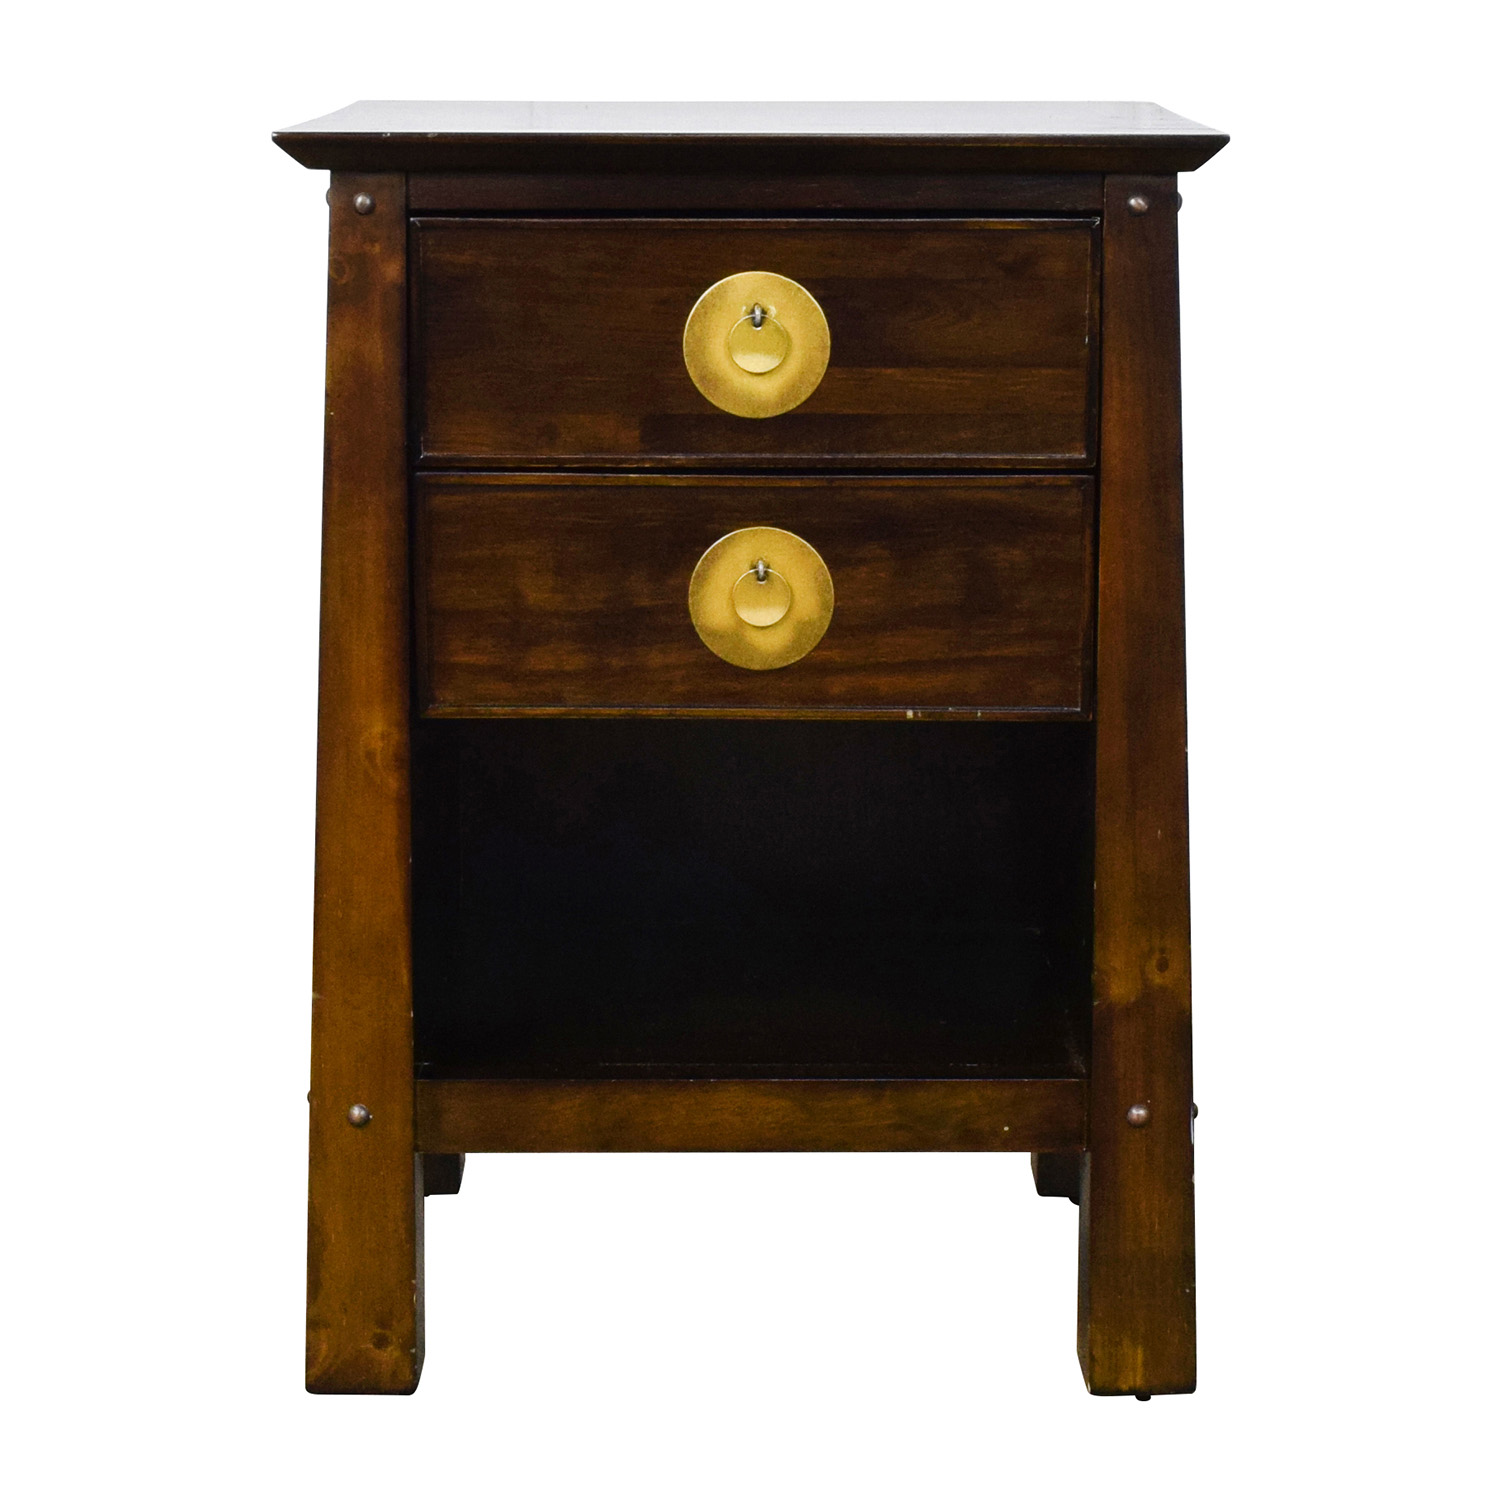 off pier imports shanghai collection espresso nightstand accent tables used front hall table bedside legs bar height tiffany dragonfly lamp glass wine rack rustic modern kitchen